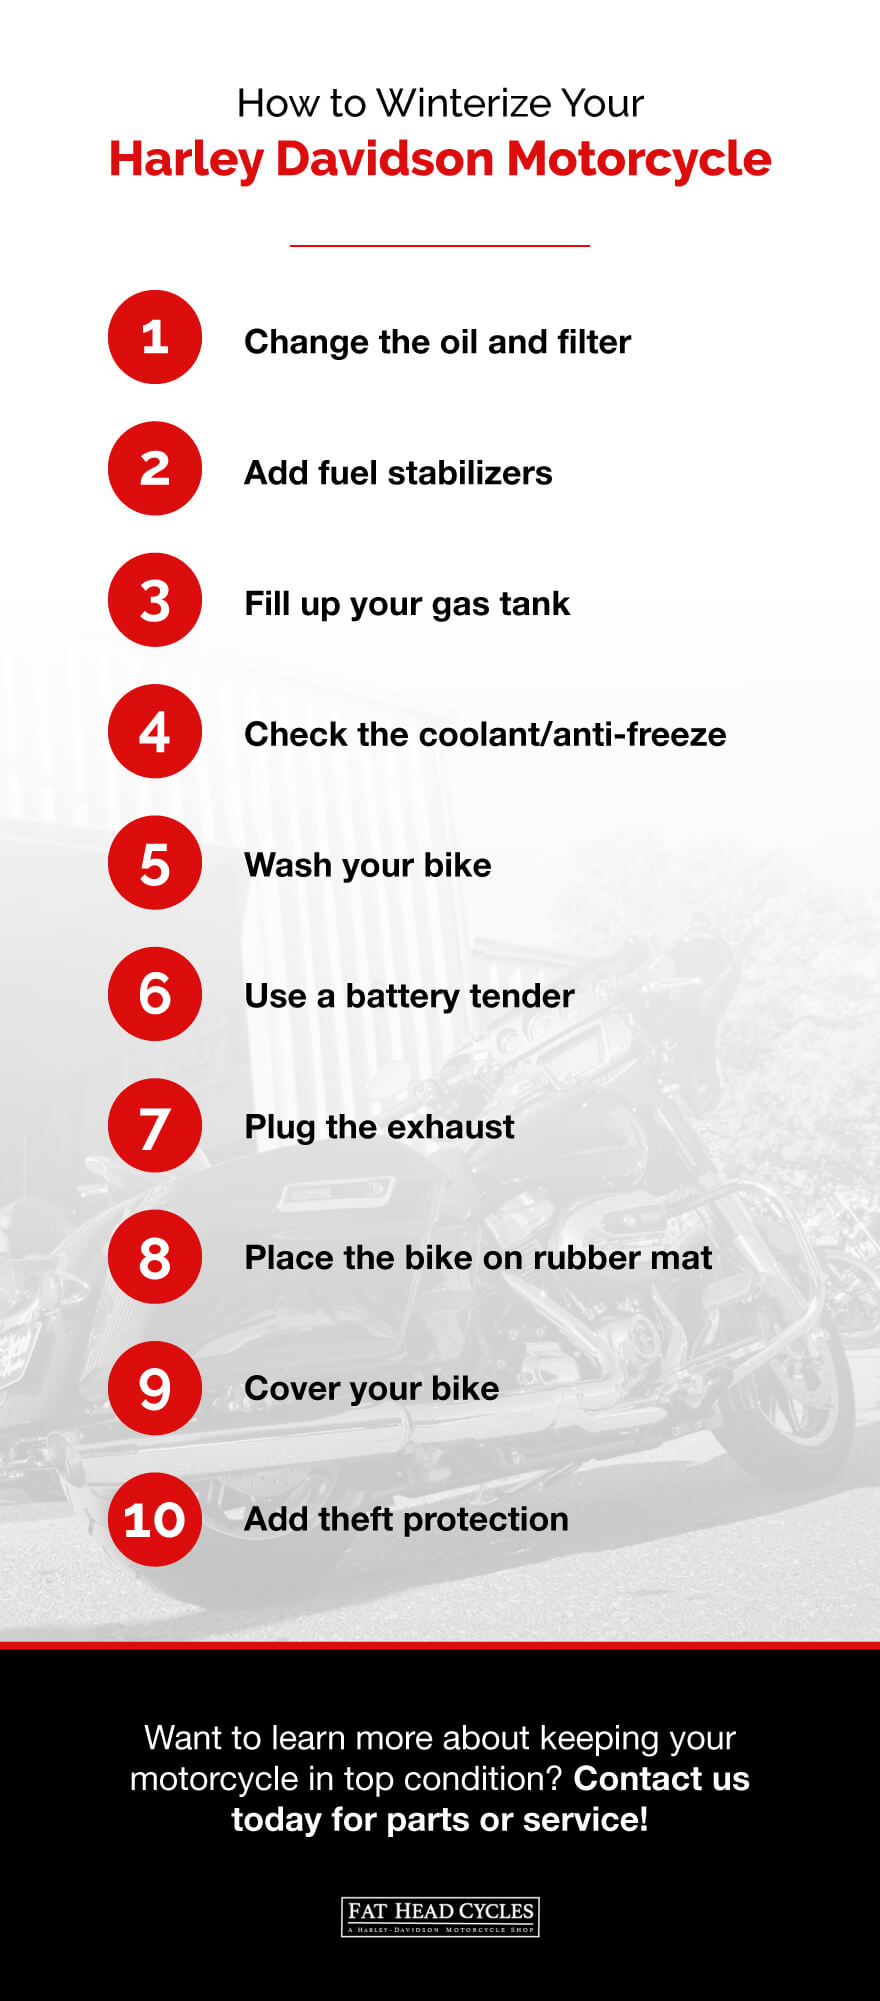 10 Tips to Winterize Your Harley Davidson Motorcycle